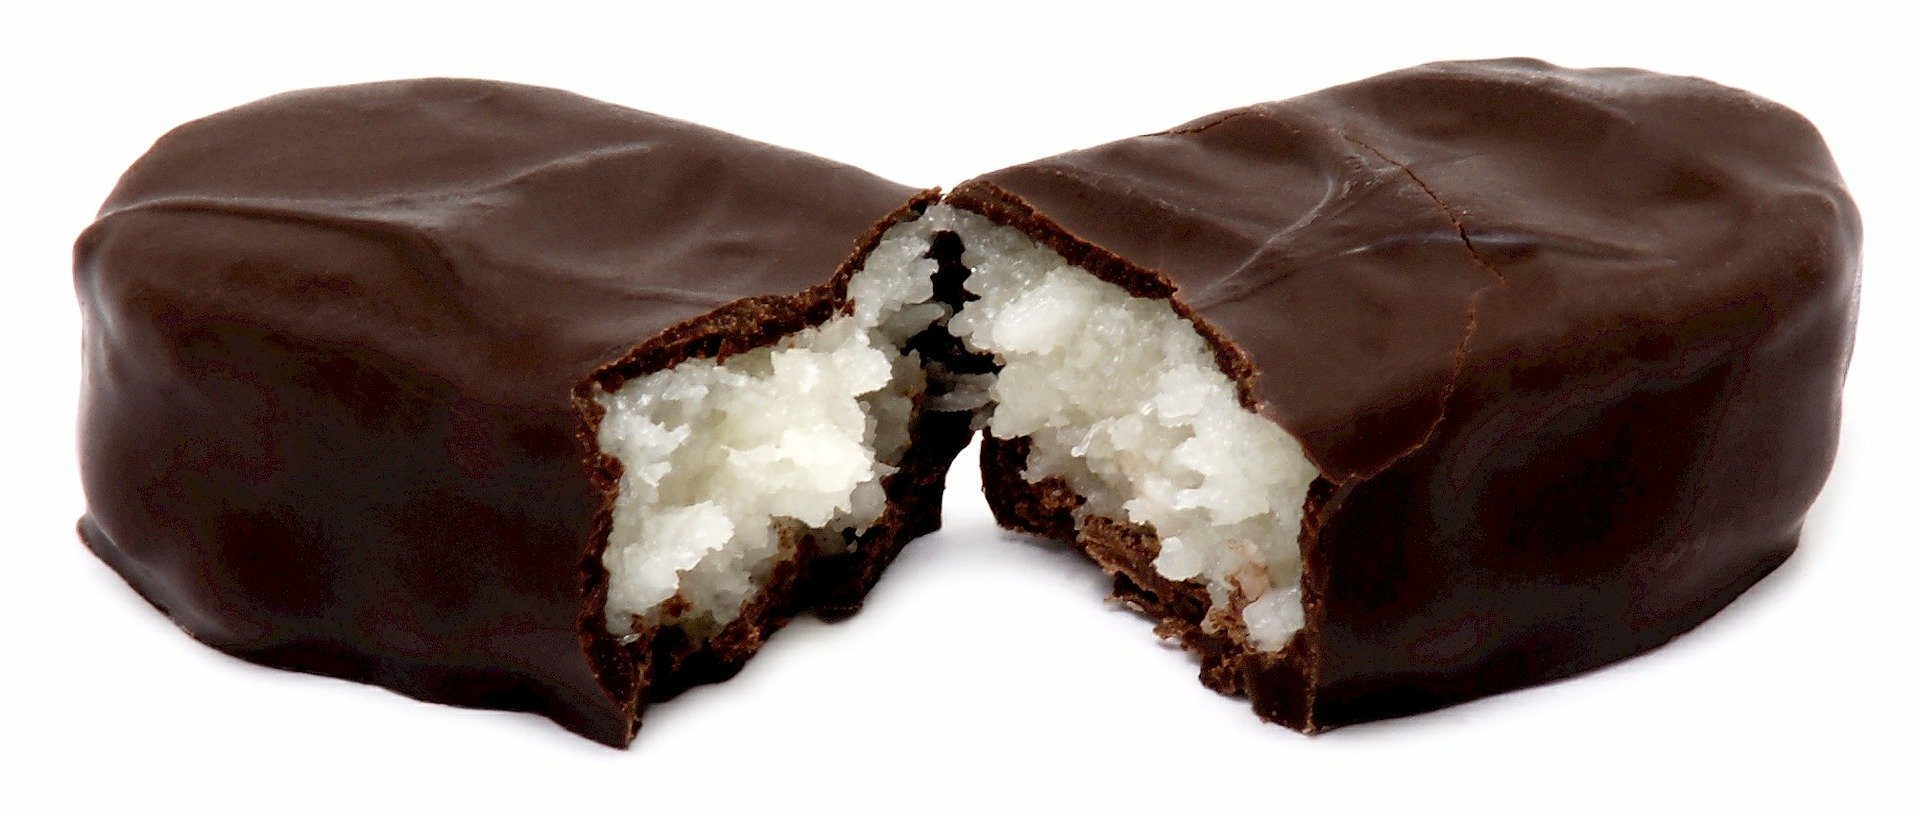 Mounds bars were invented in 1920 and originally sold for 5 cents.